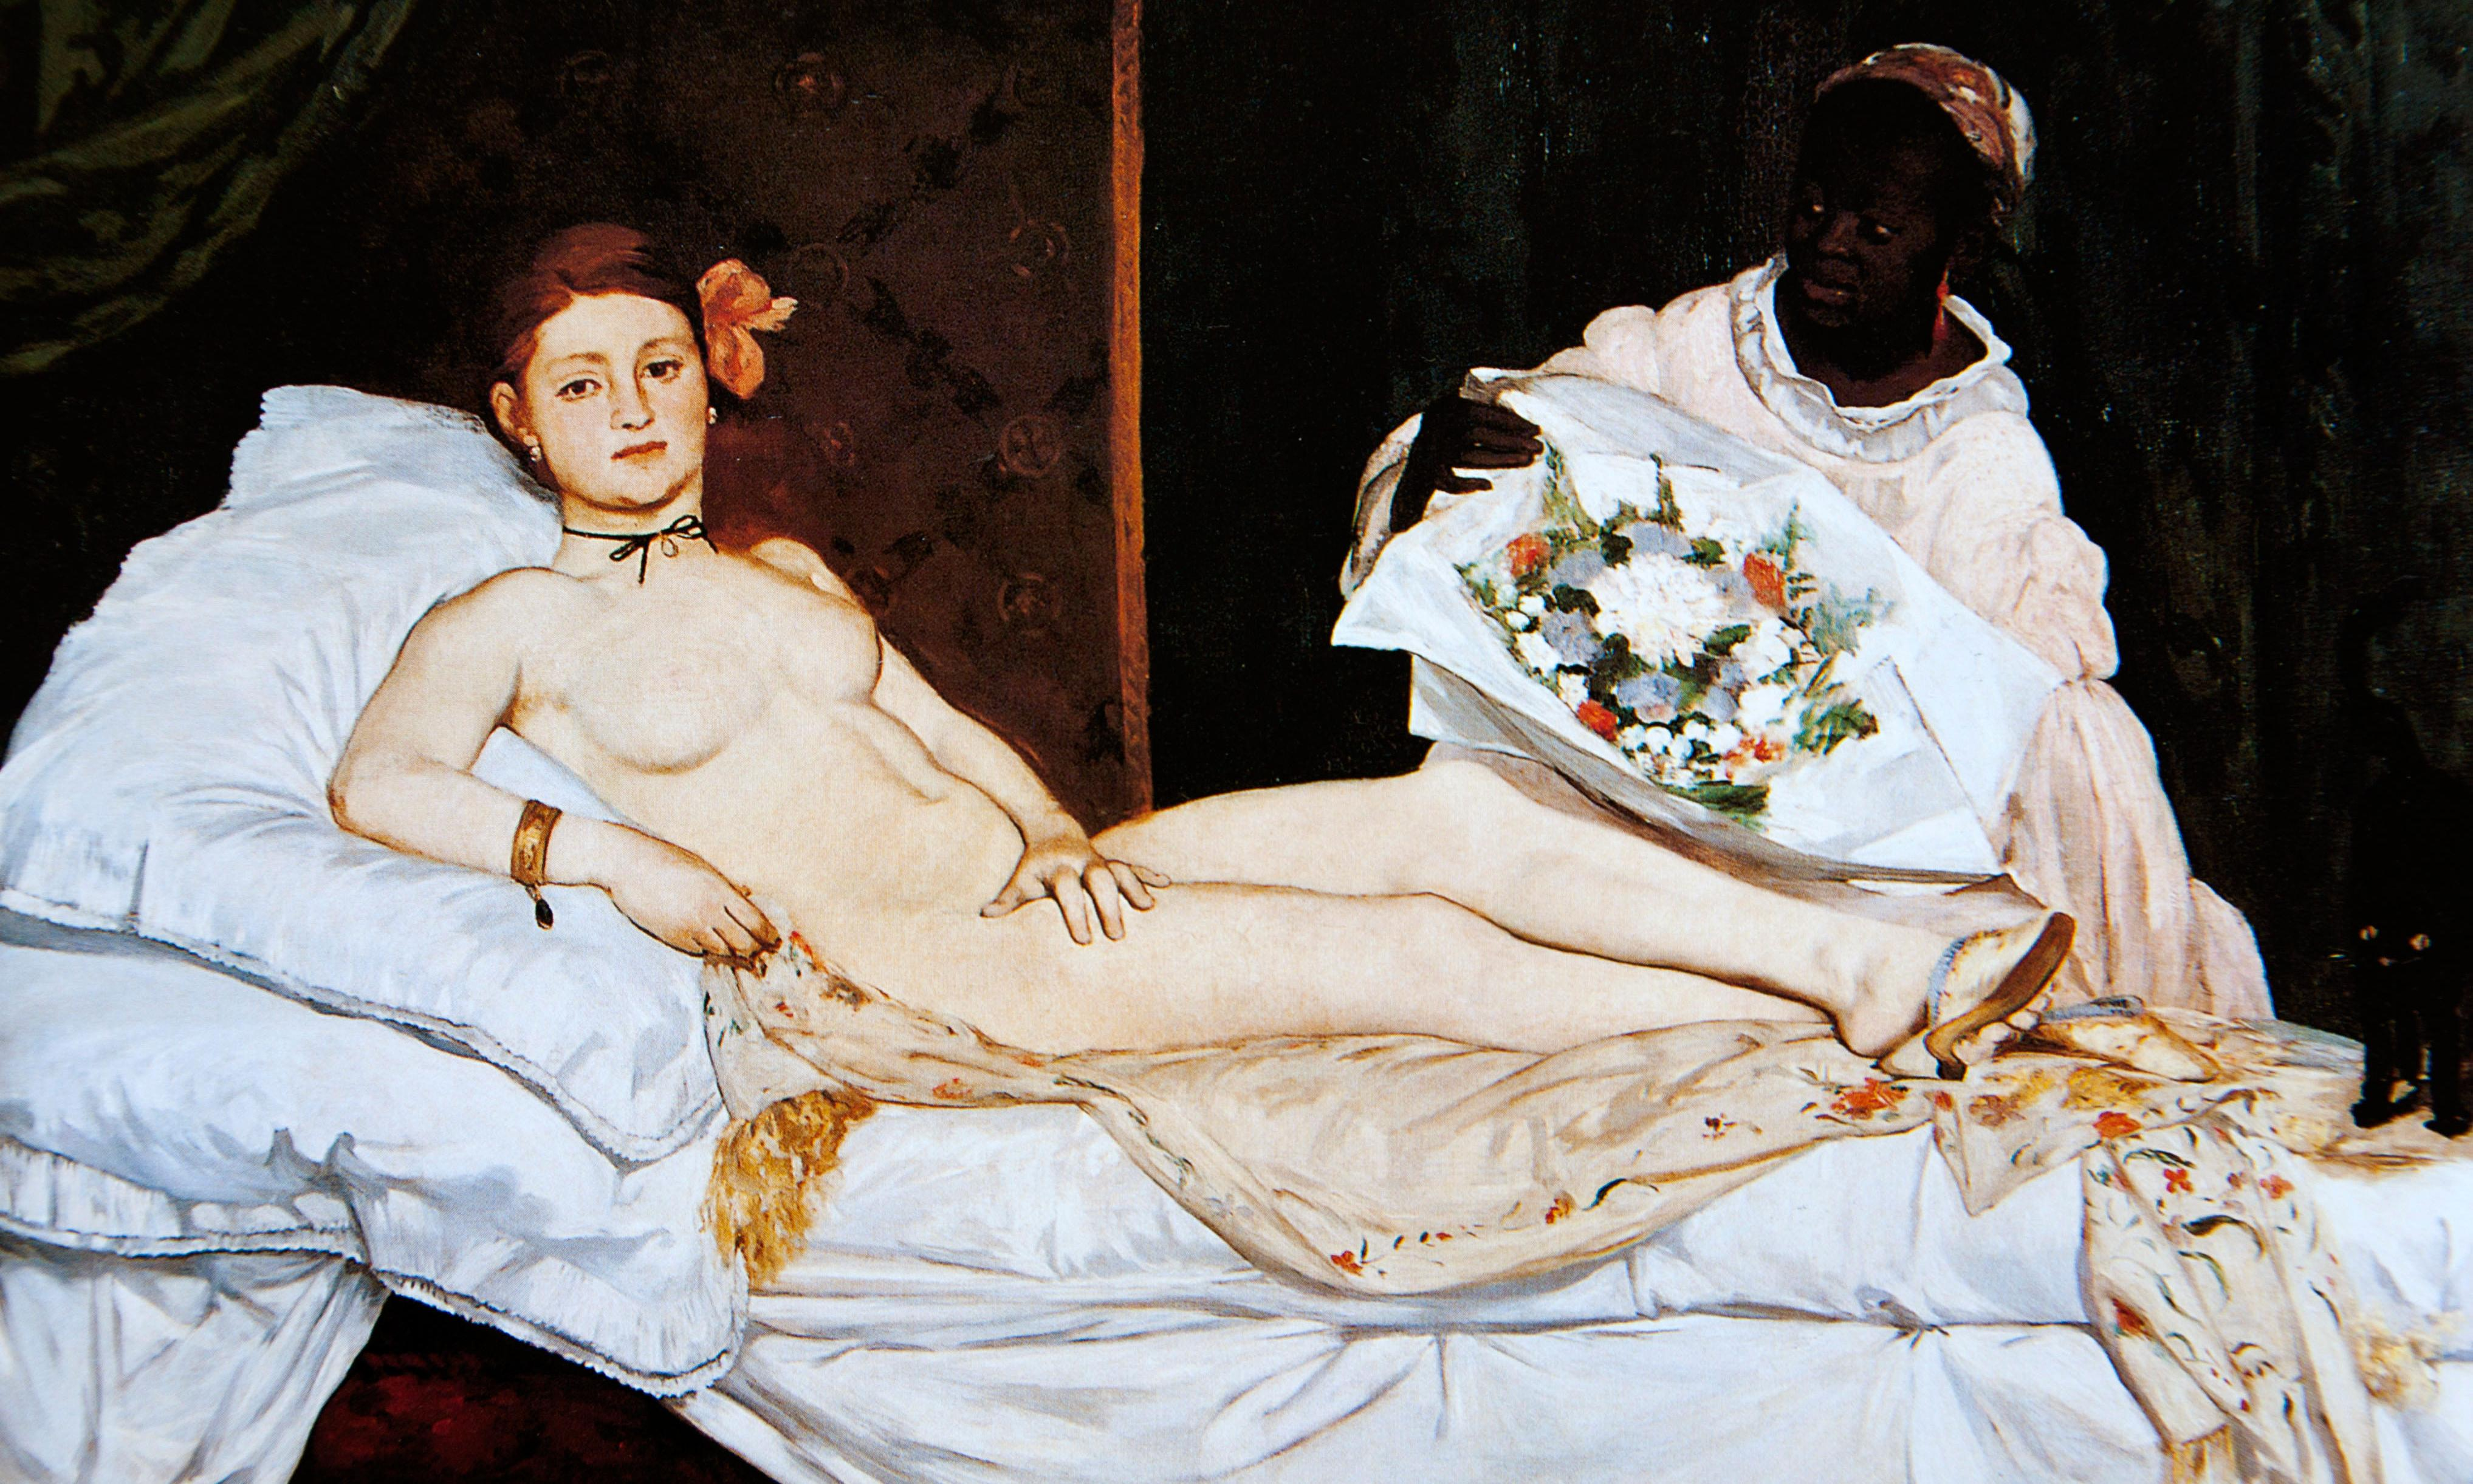 French masterpieces renamed after black subjects in new exhibition